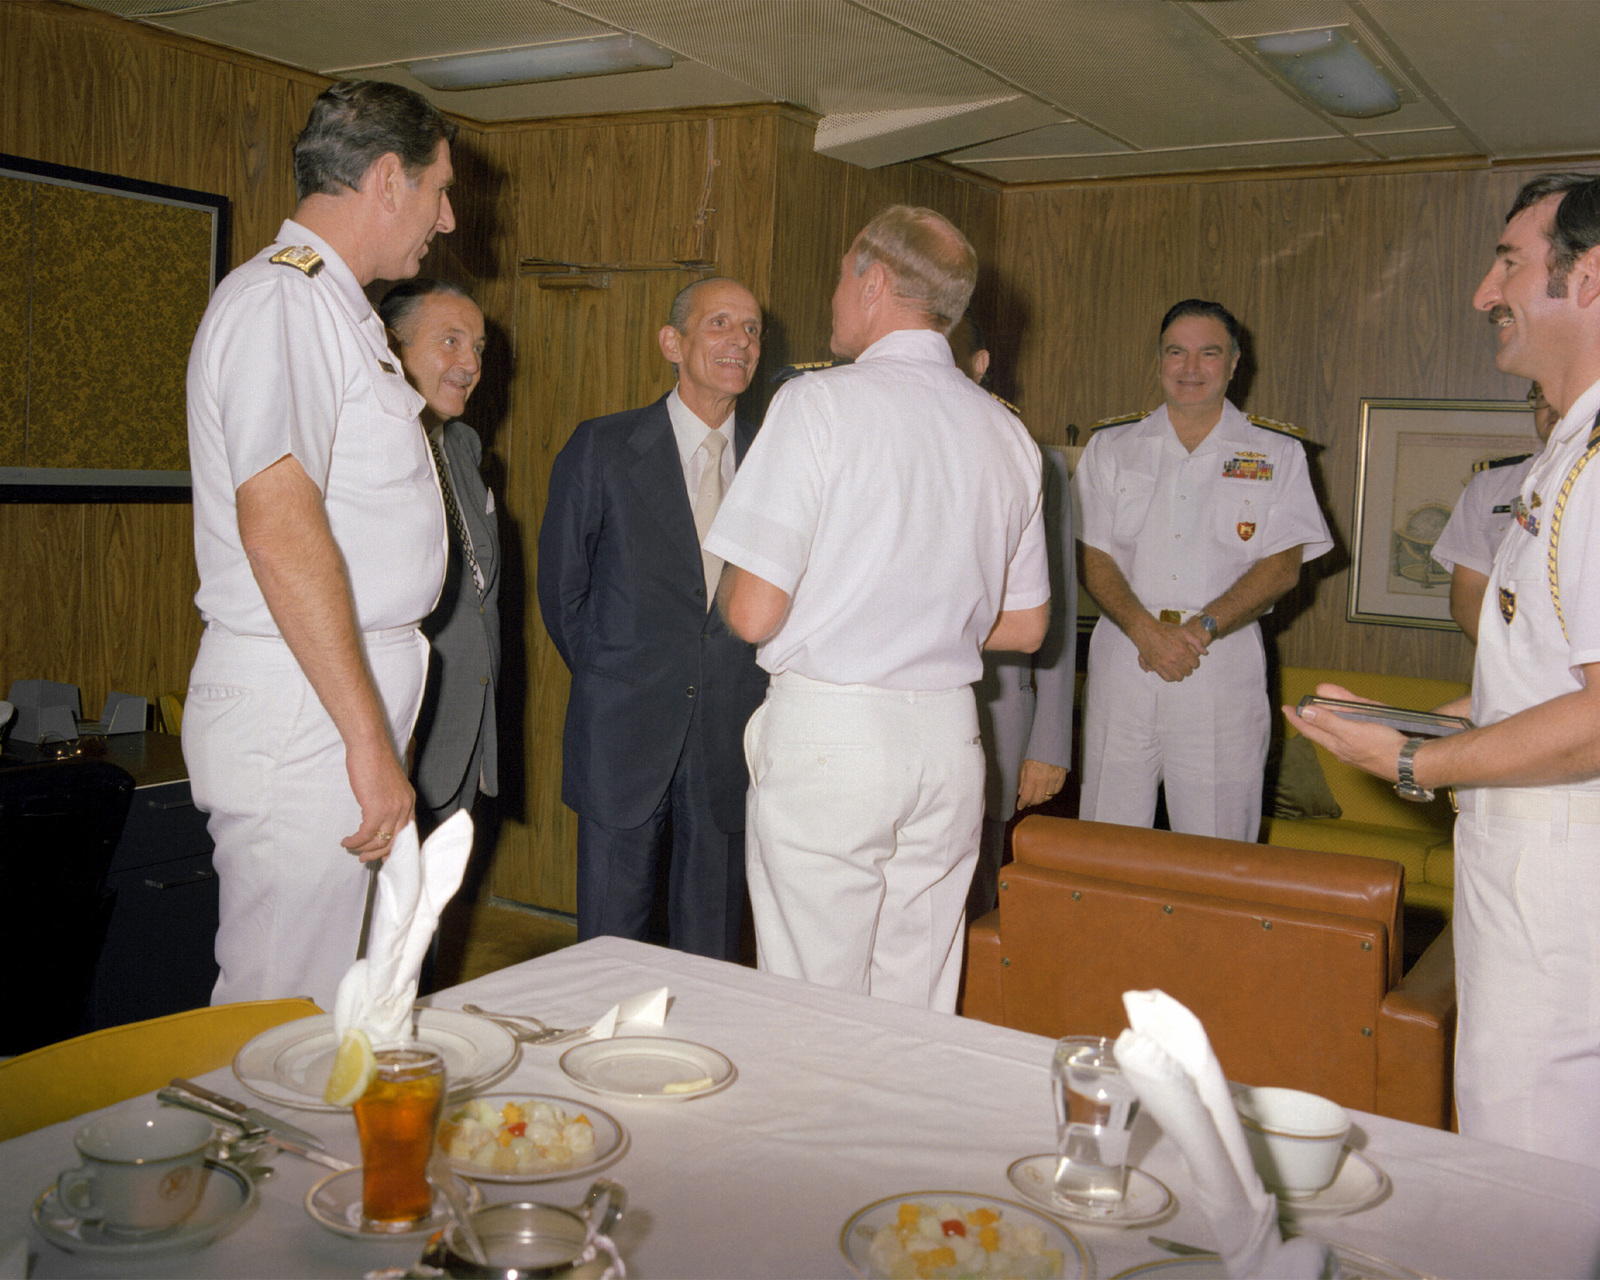 Aides watch as RDML James R. Sanderson, left, and CAPT Thomas C. Watson Jr., commanding officer, welcome the mayor of Naples for a visit aboard the aircraft carrier USS INDEPENDENCE (CV-62) and for a meal in the officers' mess